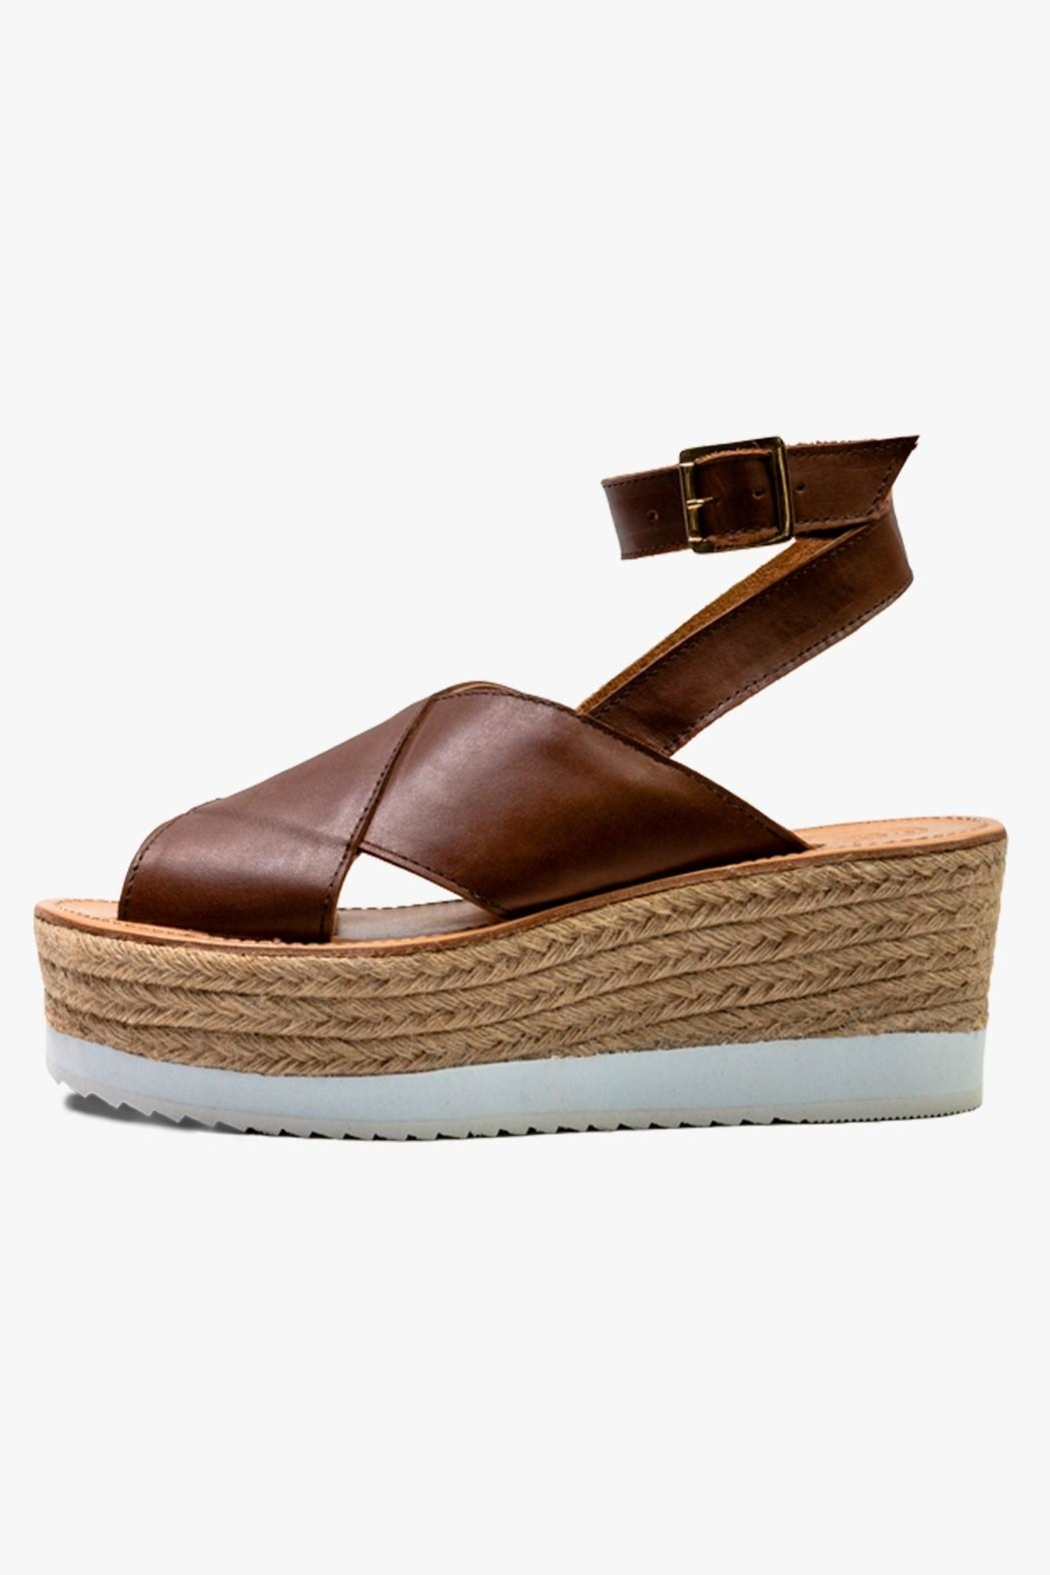 Morkas Shoes Brown Leather Espadrille - Main Image